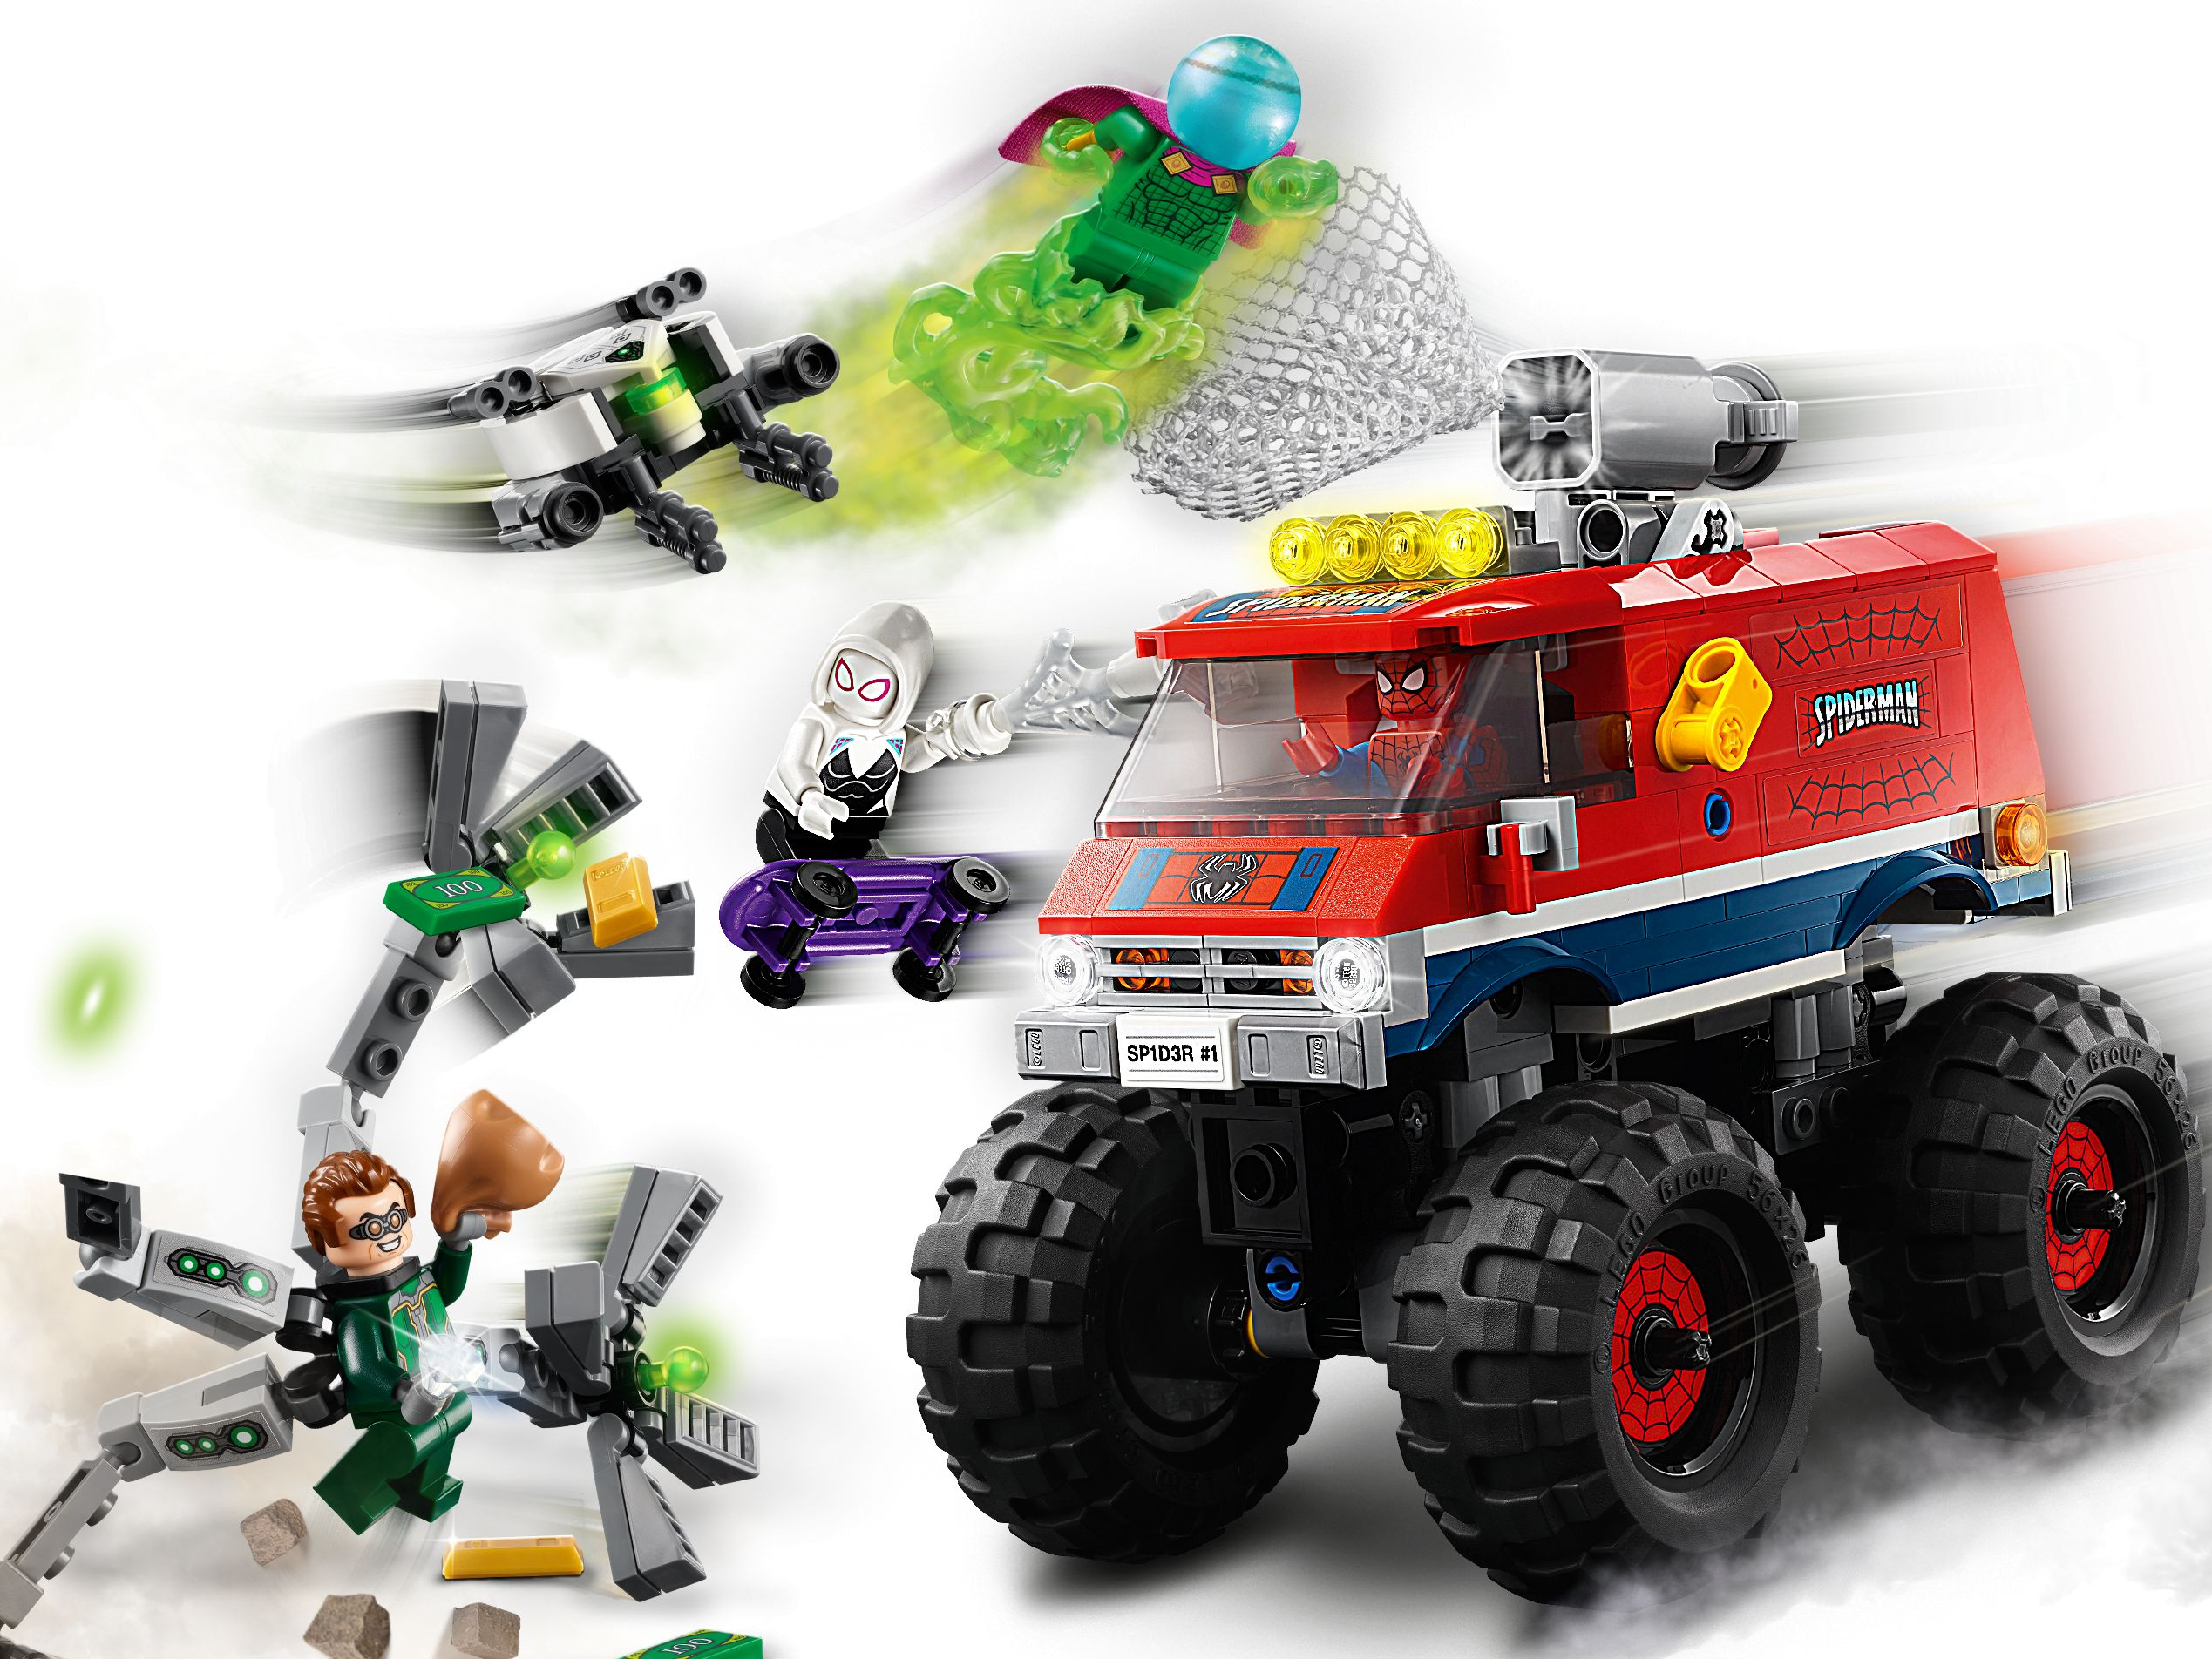 LEGO Super Heroes 76174 Spider-Mans Monstertruck vs. Mysterio LEGO_76174_alt3.jpg